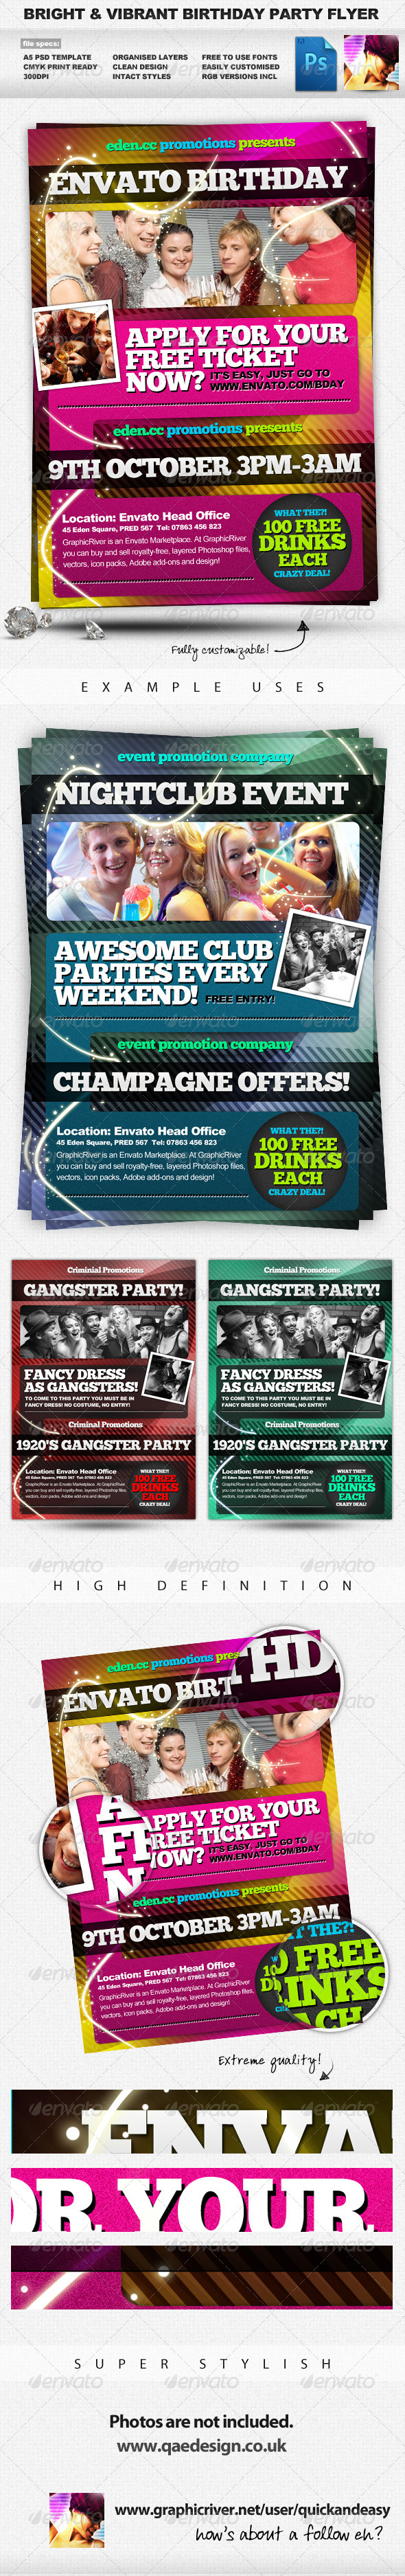 GraphicRiver Bright Vibrant & Energetic A5 Party Flyer 233524